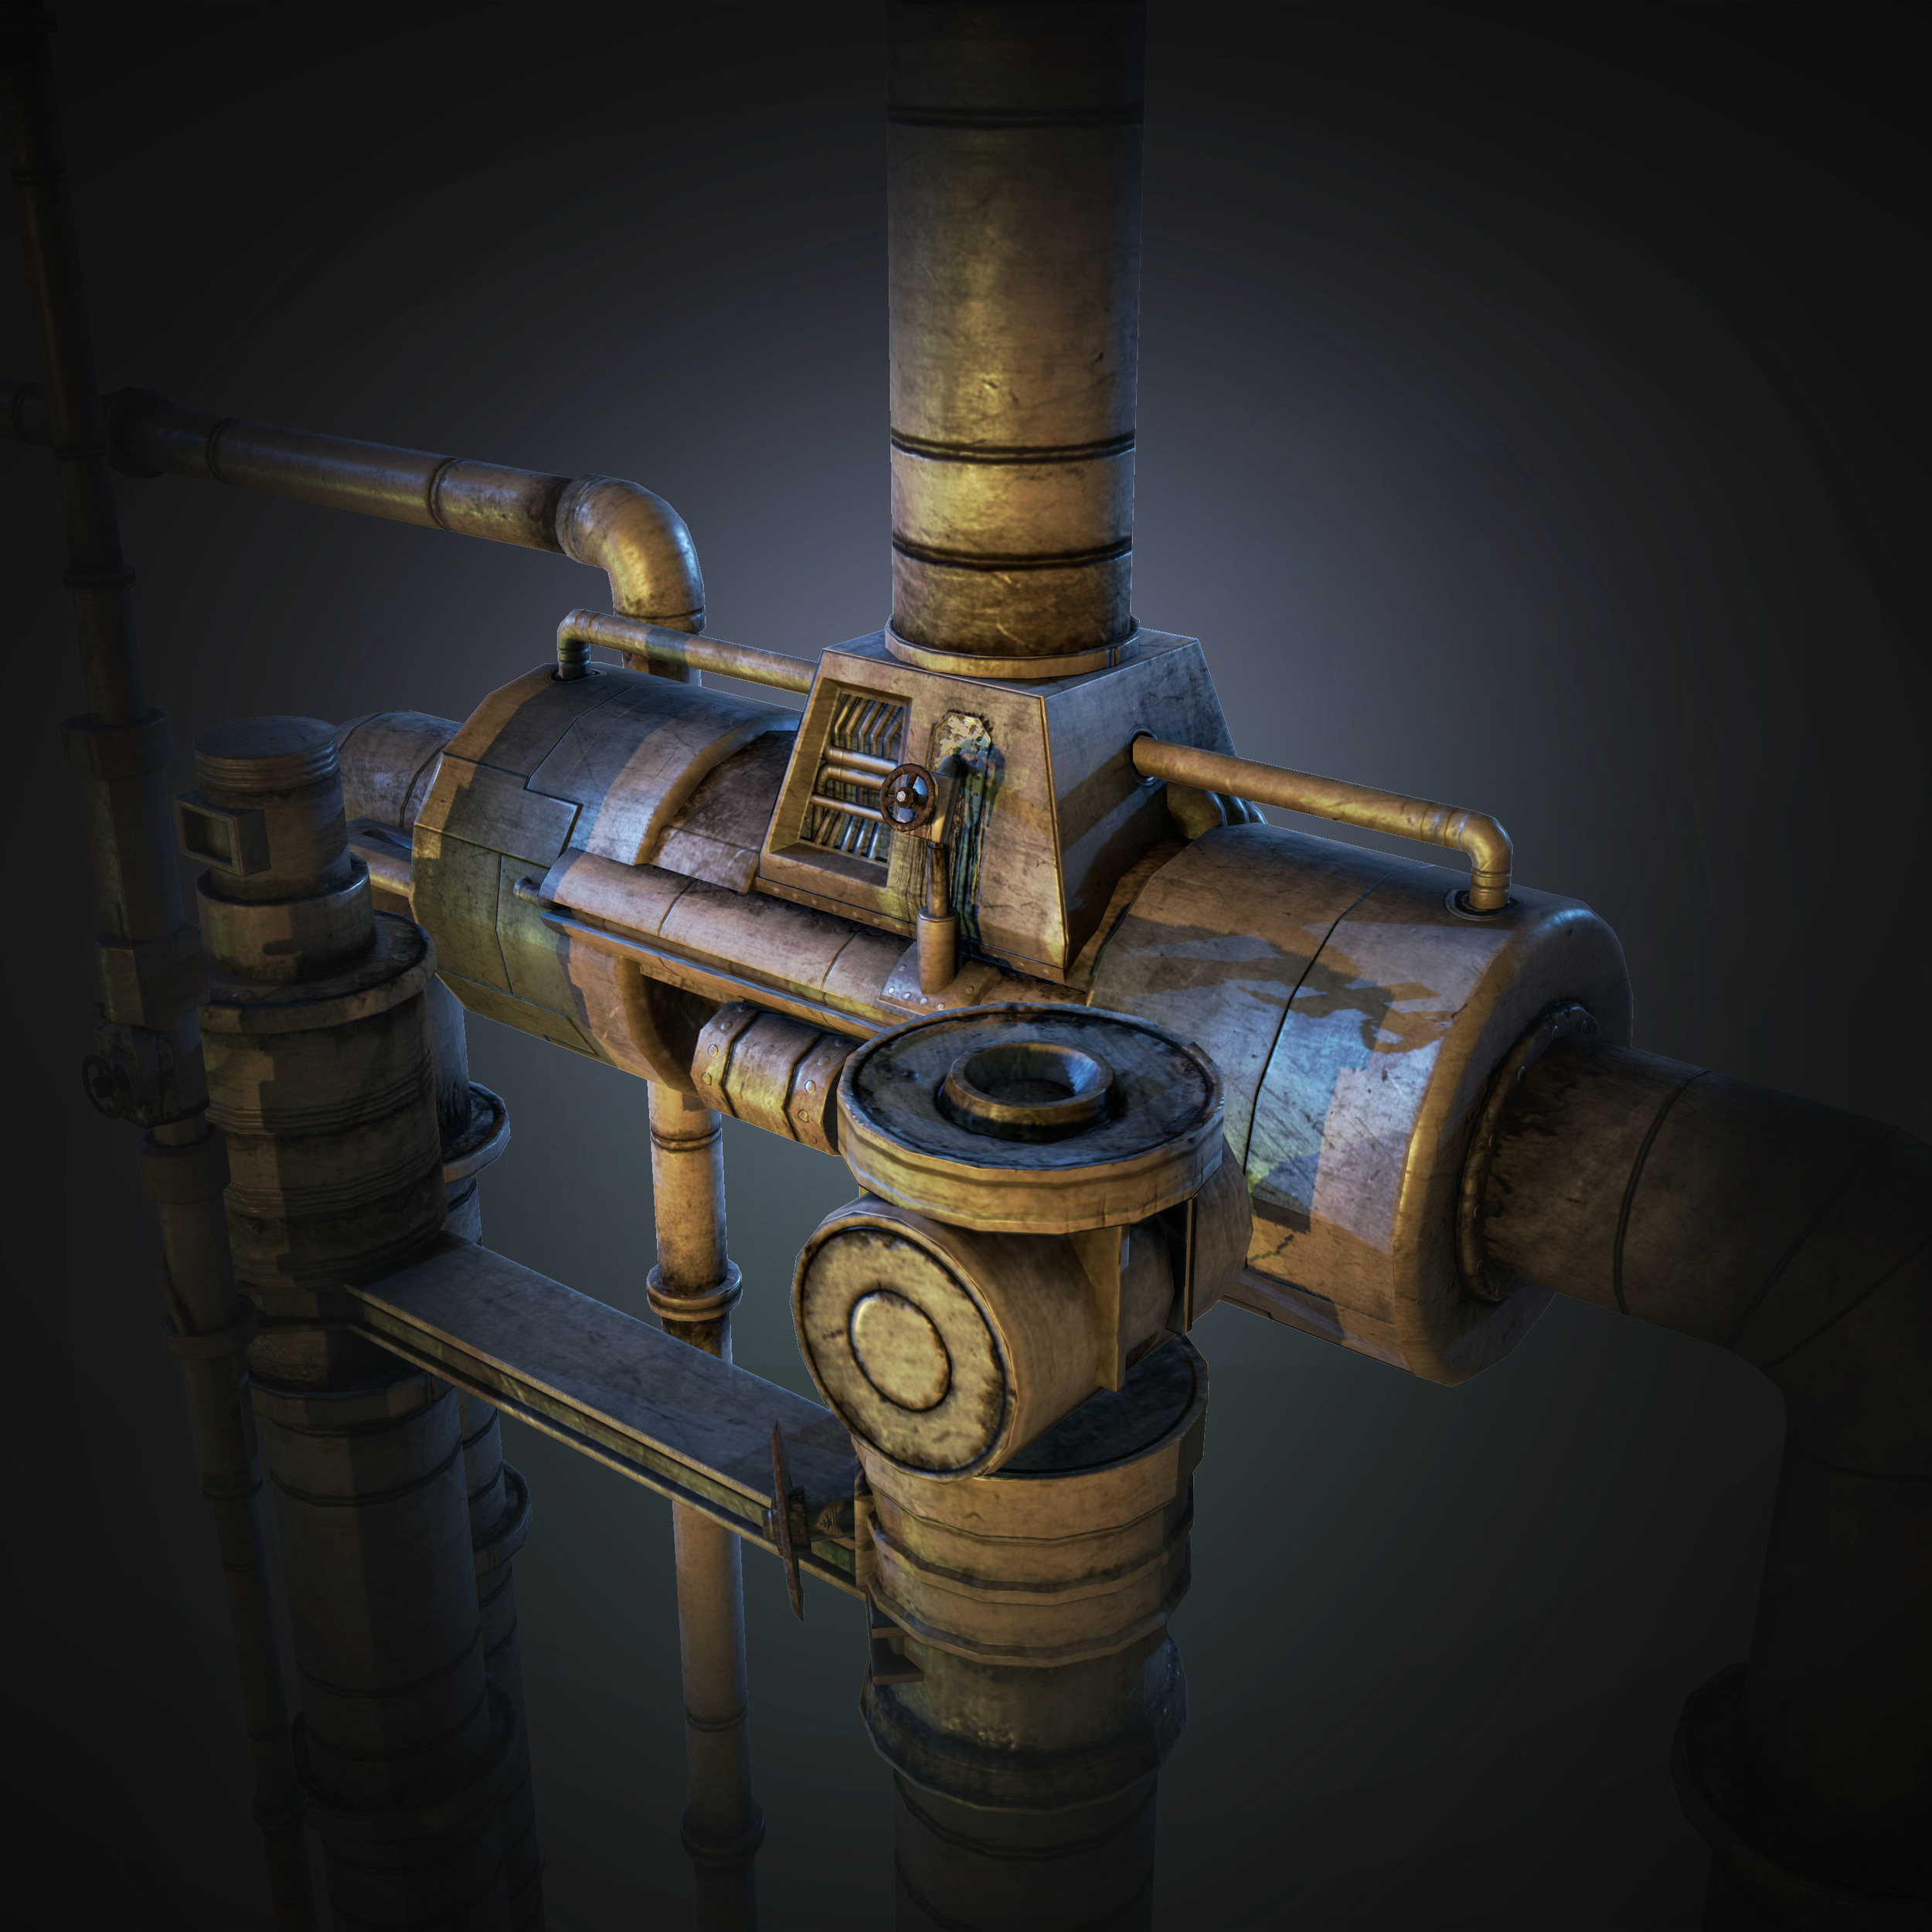 Pipes_Lowpoly_Angle.jpg